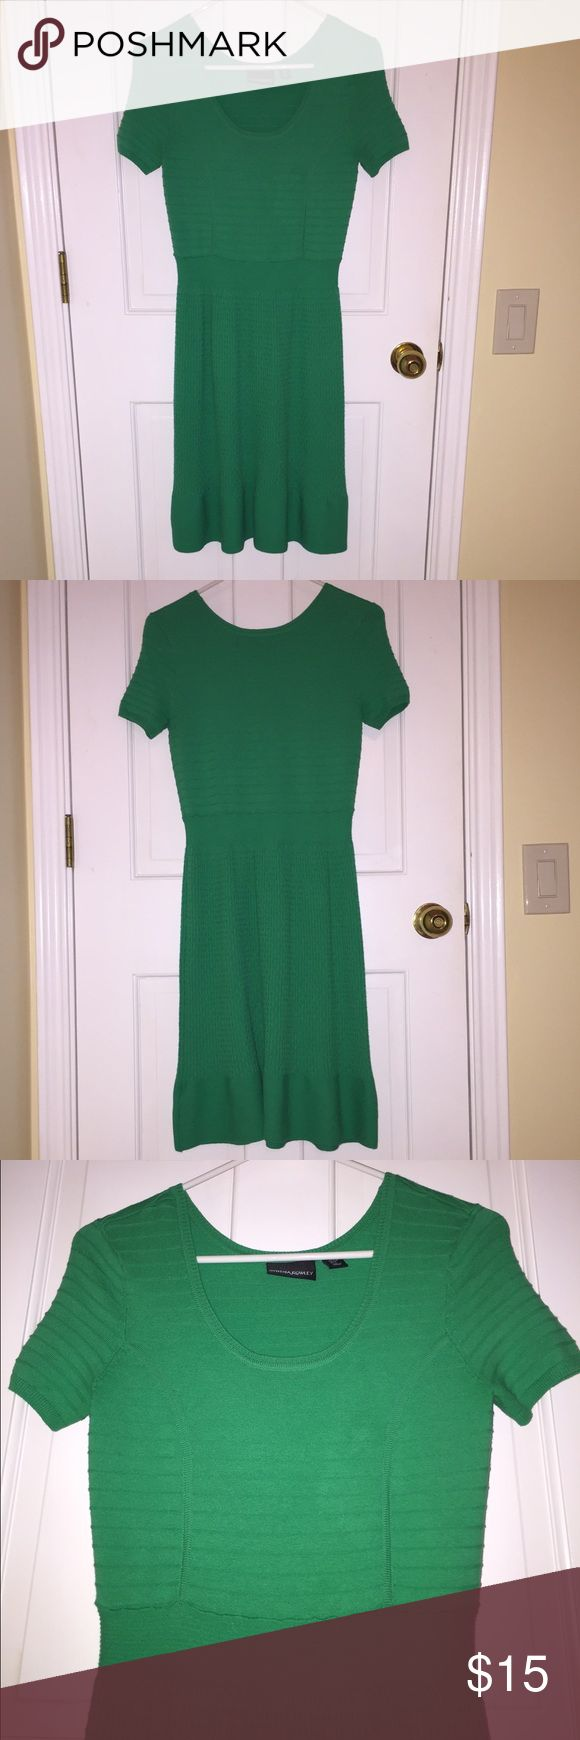 Green knit dress Green dress with knit detailing and short sleeves. Fun dress for springtime! Cynthia Rowley Dresses Midi